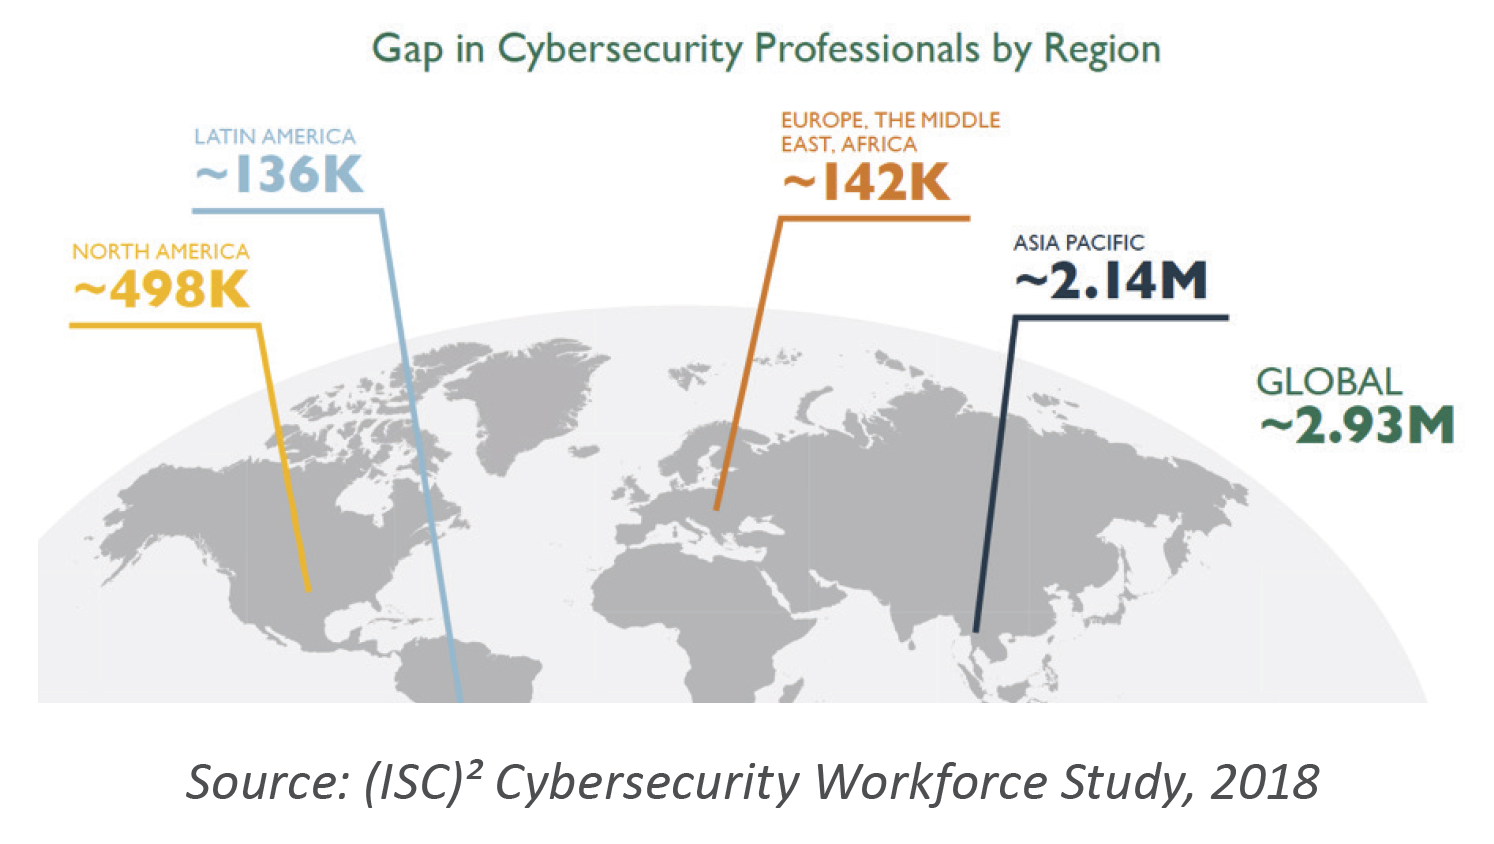 Source: (ISC)² Cybersecurity Workforce Study, 2018